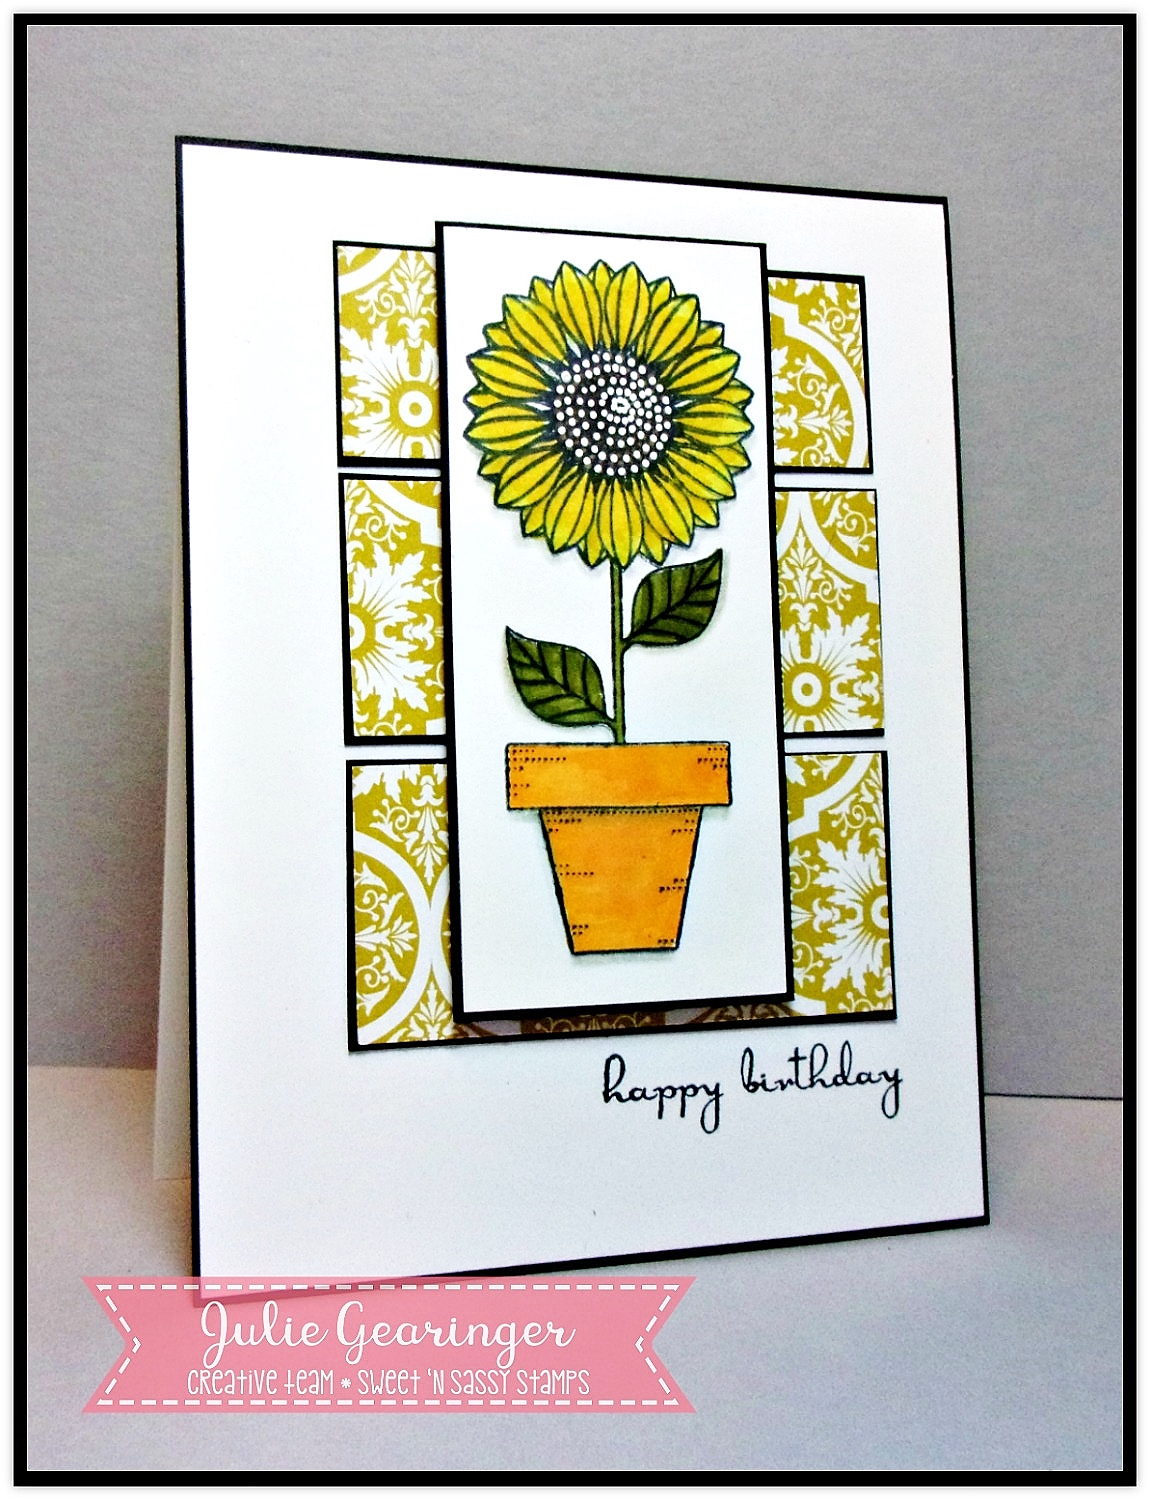 Coloring Book Chance The R Er Clean : Stamping with julie gearinger snss pretty potted florals sneak peek